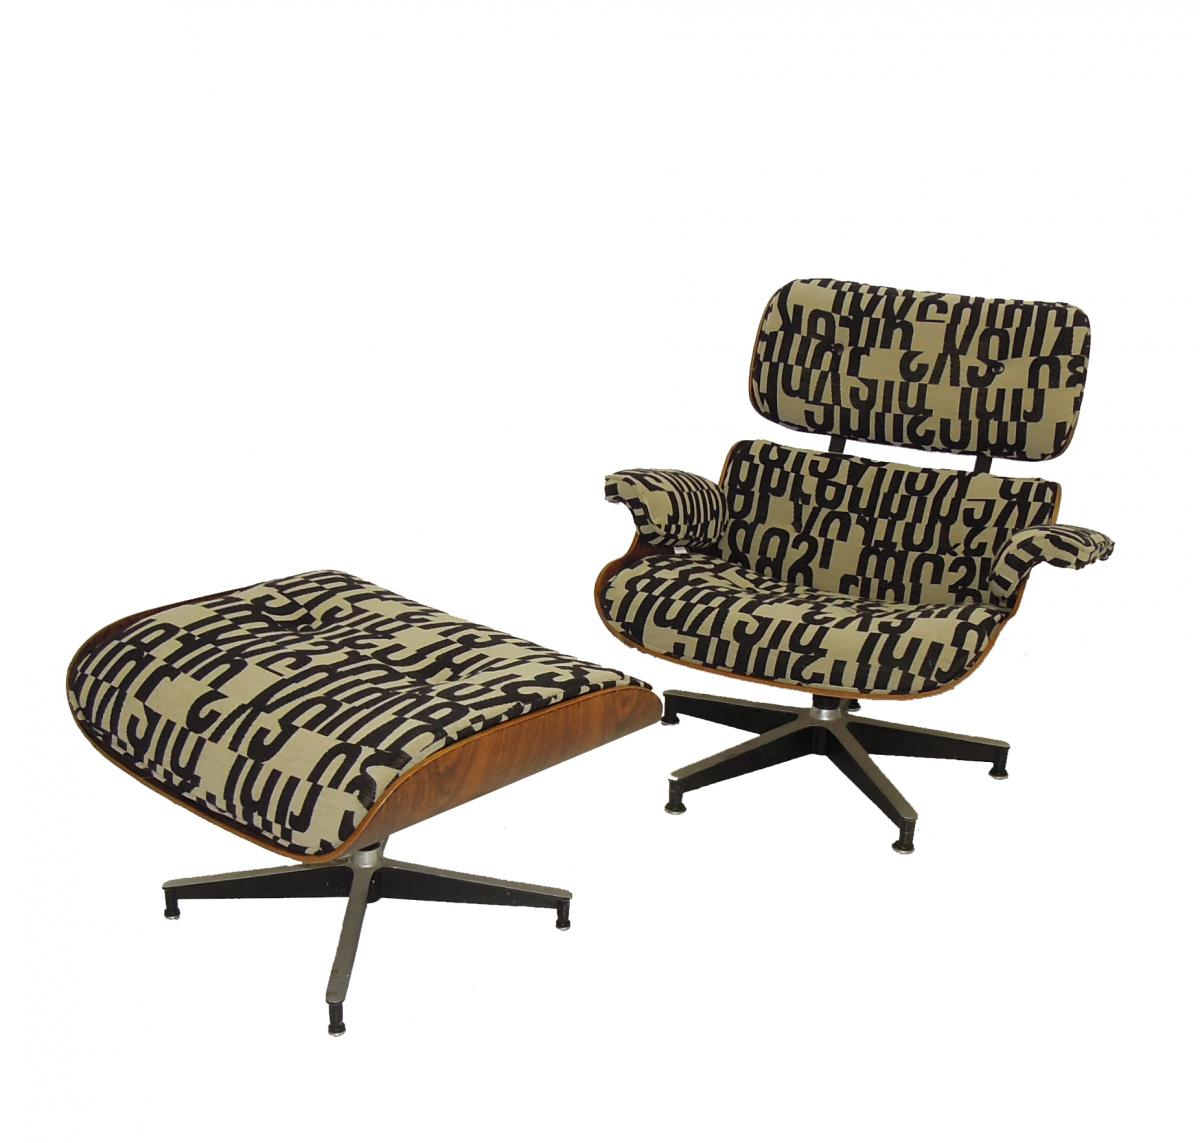 Charmant Eames Lounge Chair Reupholster Maharam Fabric MOD